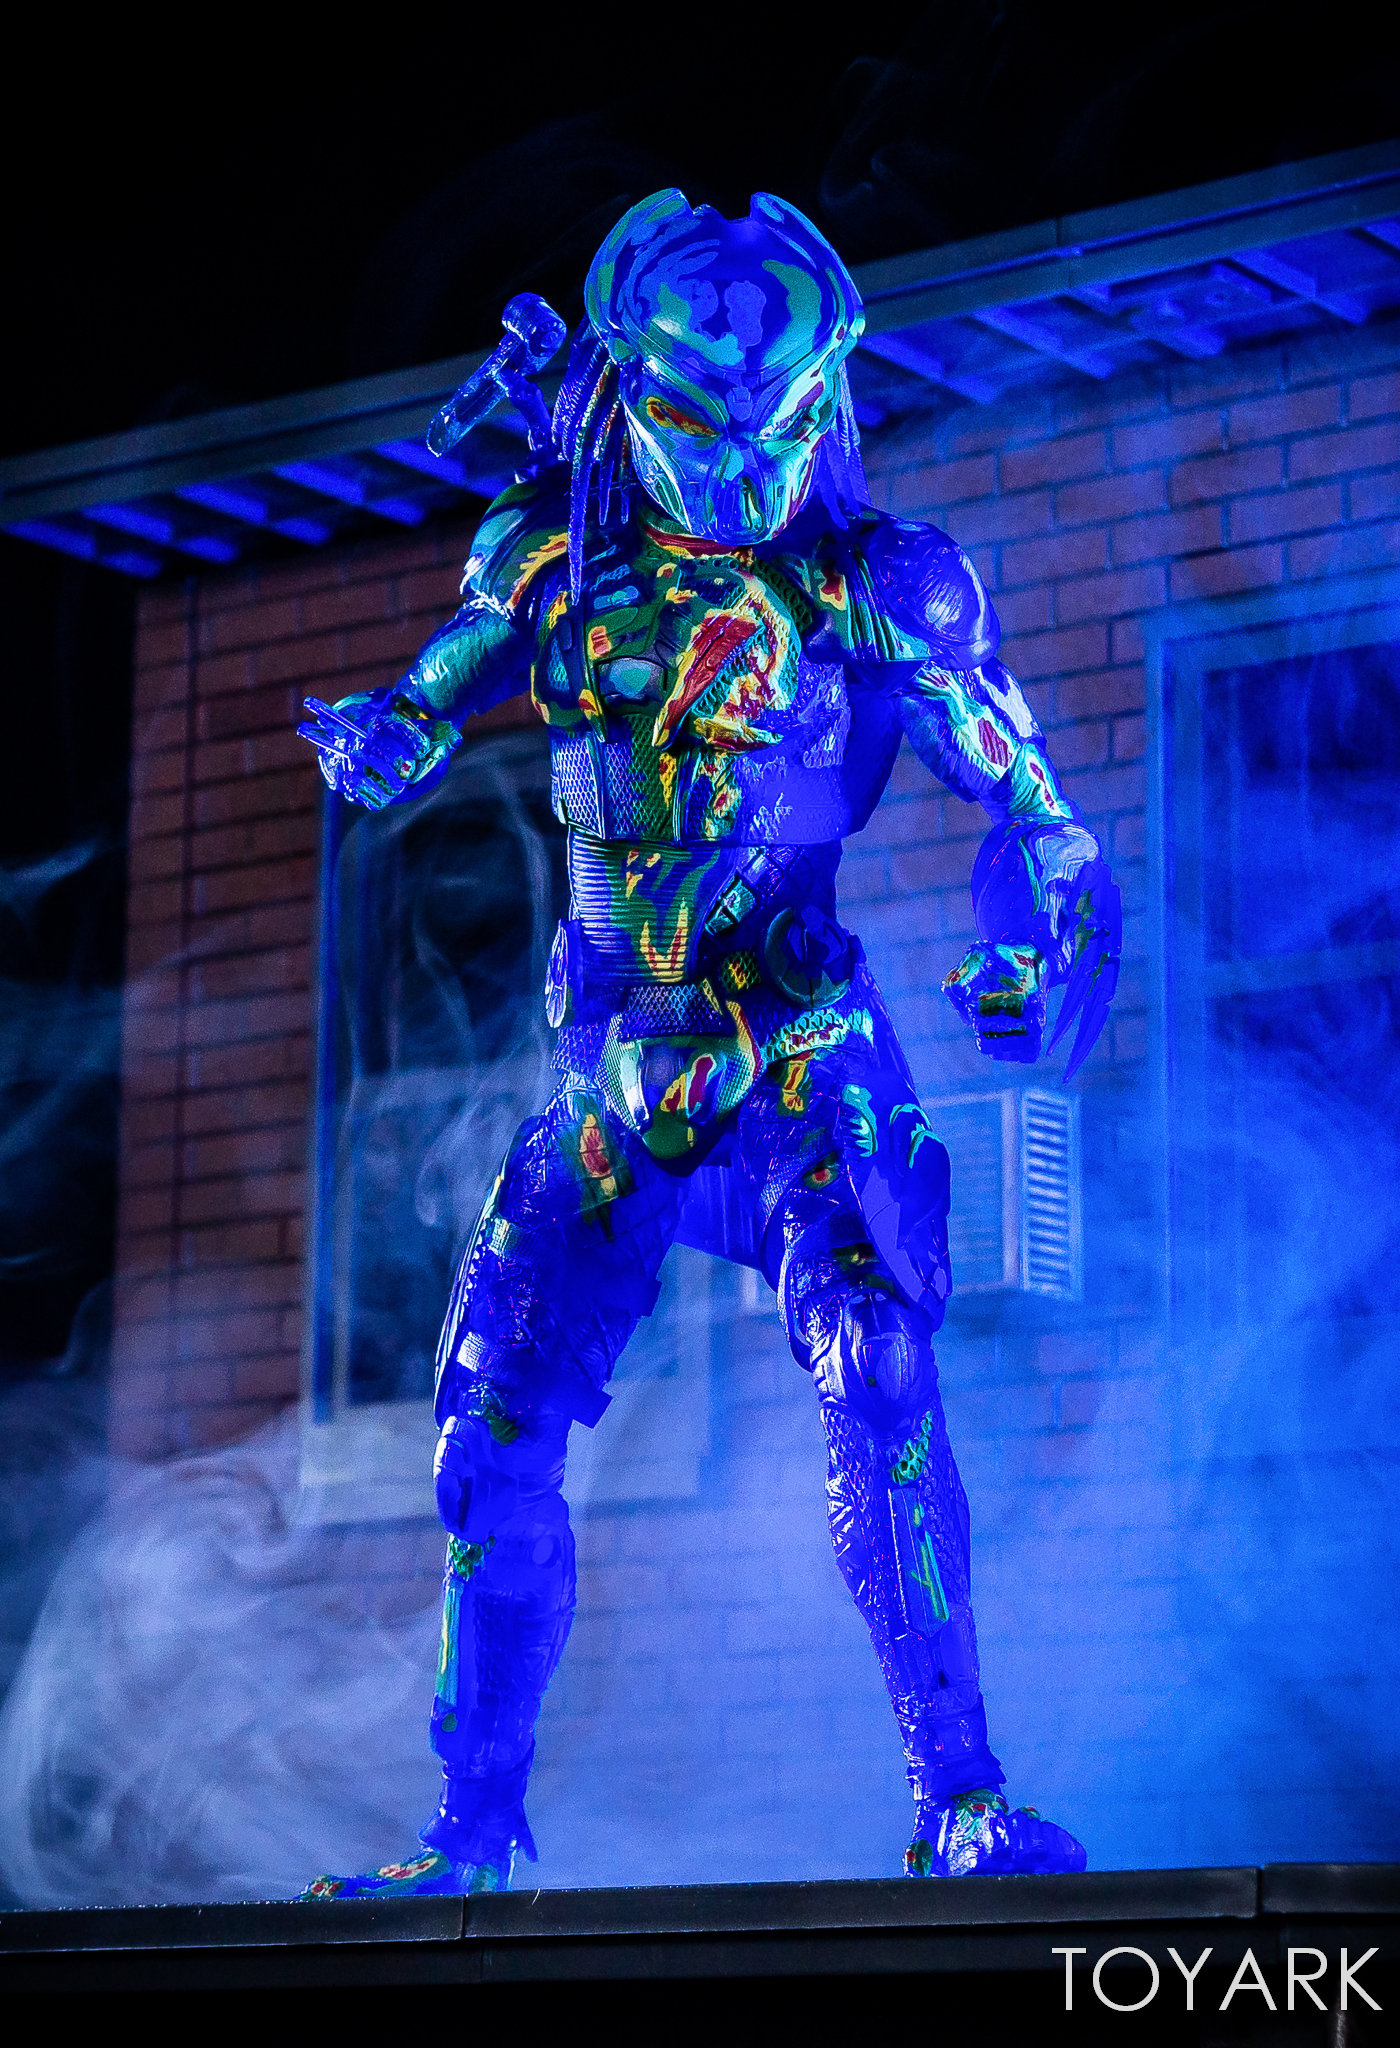 https://news.toyark.com/wp-content/uploads/sites/4/2018/12/NECA-Predator-2018-Thermal-Vision-Predator-022.jpg